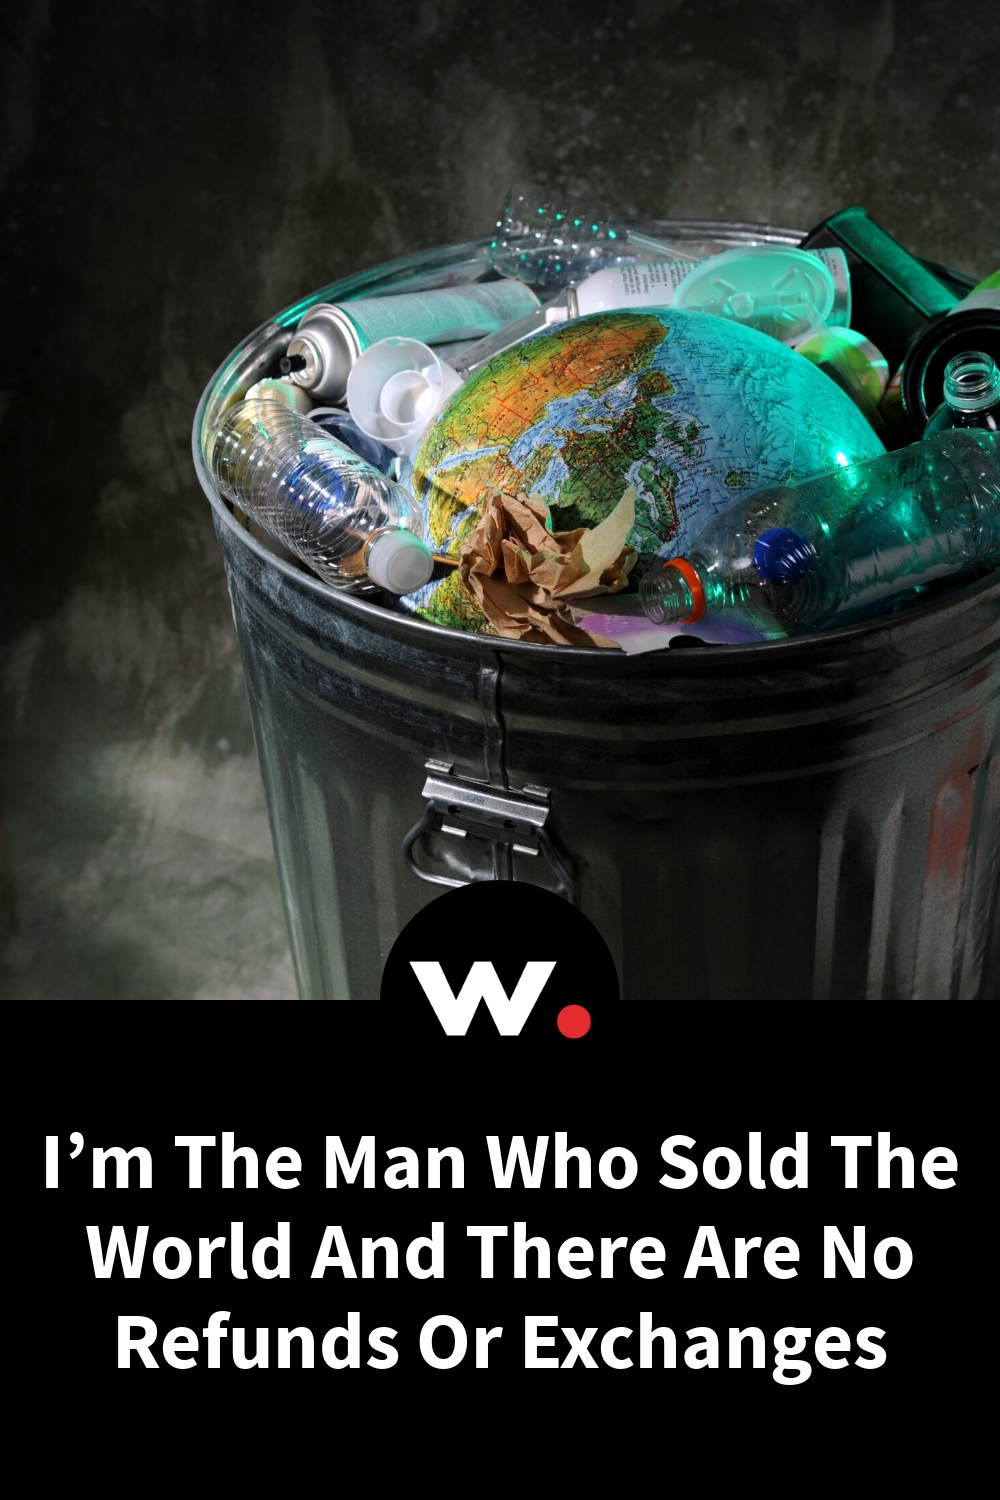 I'm The Man Who Sold The World And There Are No Refunds Or Exchanges